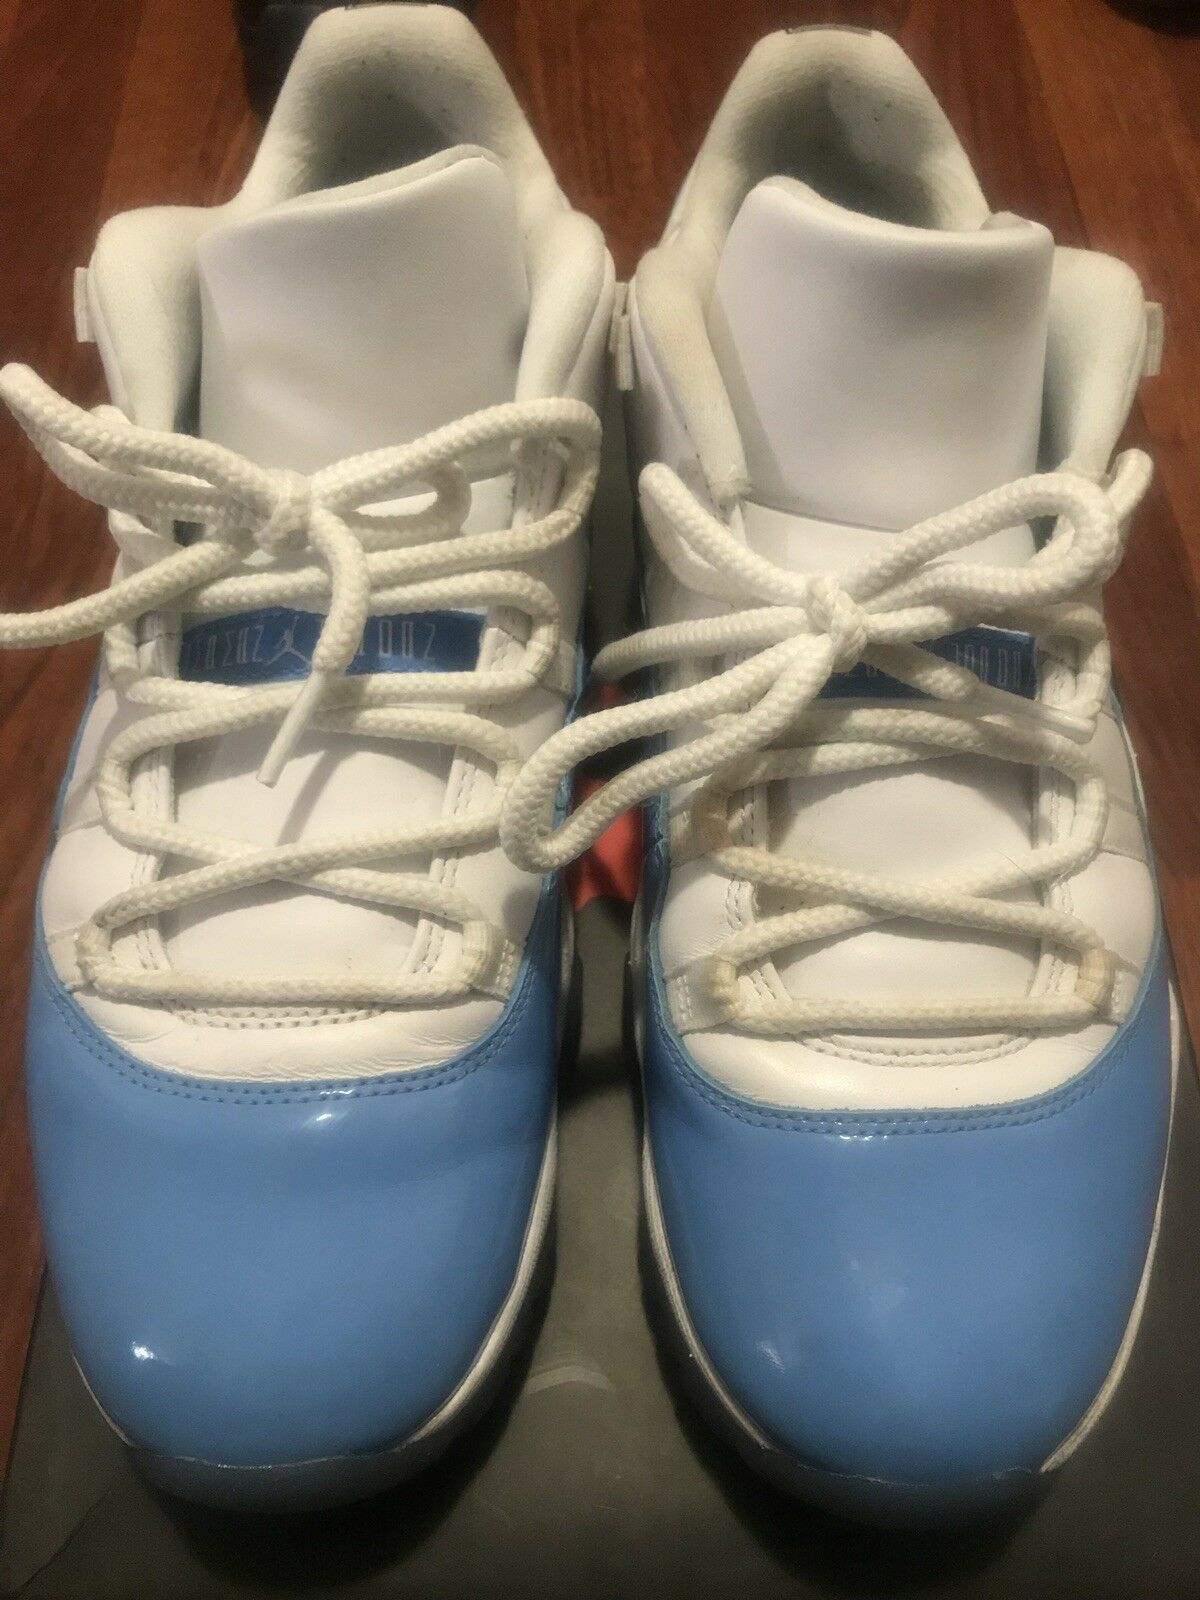 Nike Men's Air Jordan 11 Retro Sneakers - Sky Blue And White Size 10.5